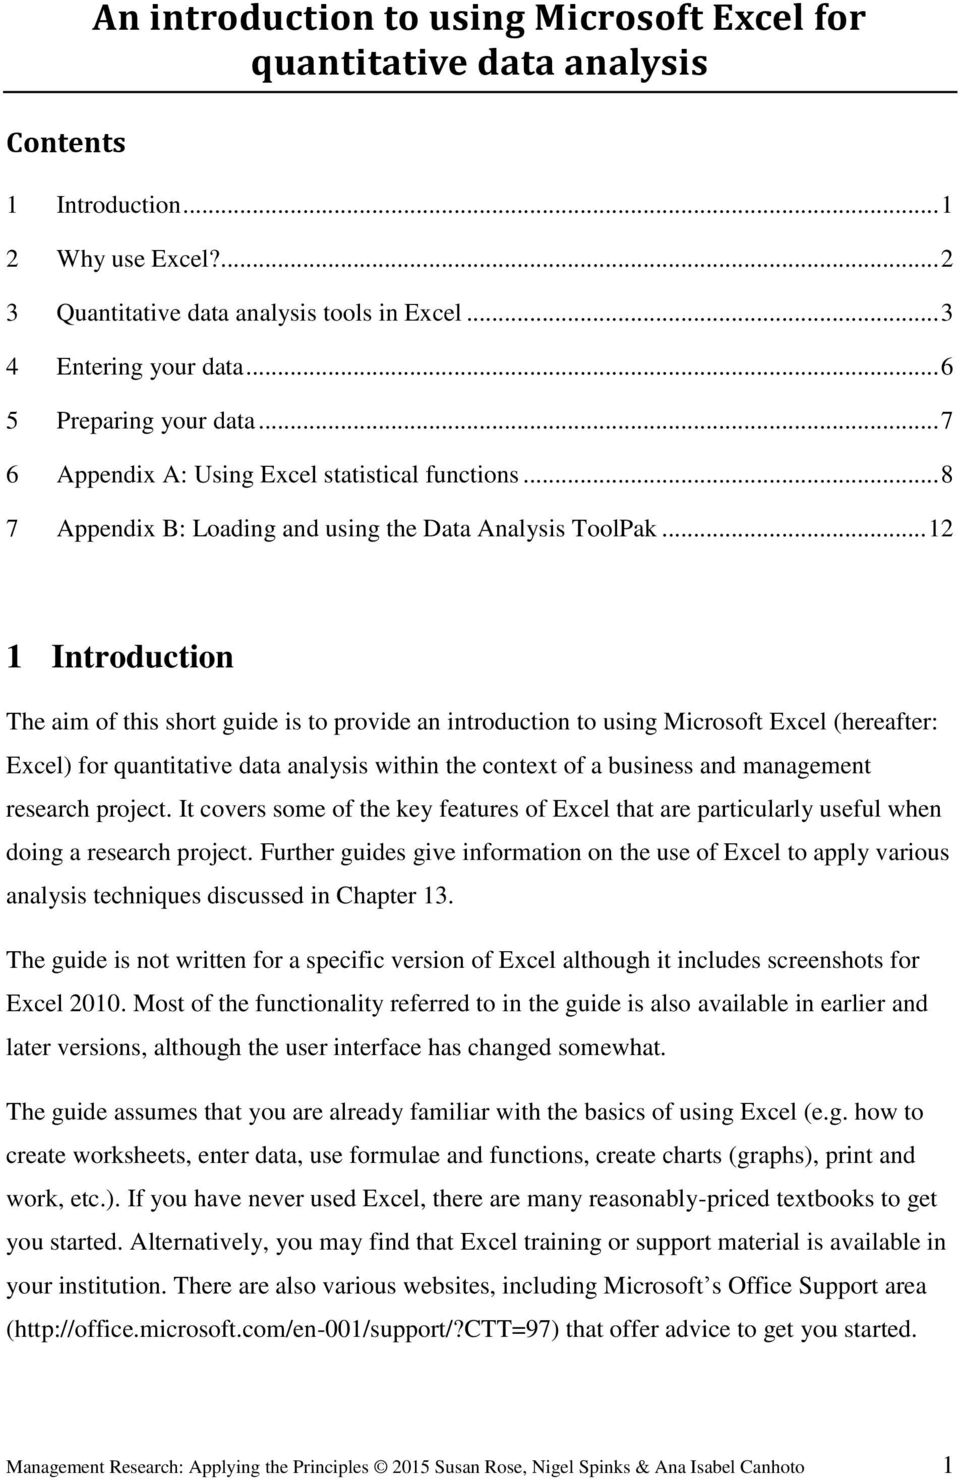 .. 12 1 Introduction The aim of this short guide is to provide an introduction to using Microsoft Excel (hereafter: Excel) for quantitative data analysis within the context of a business and